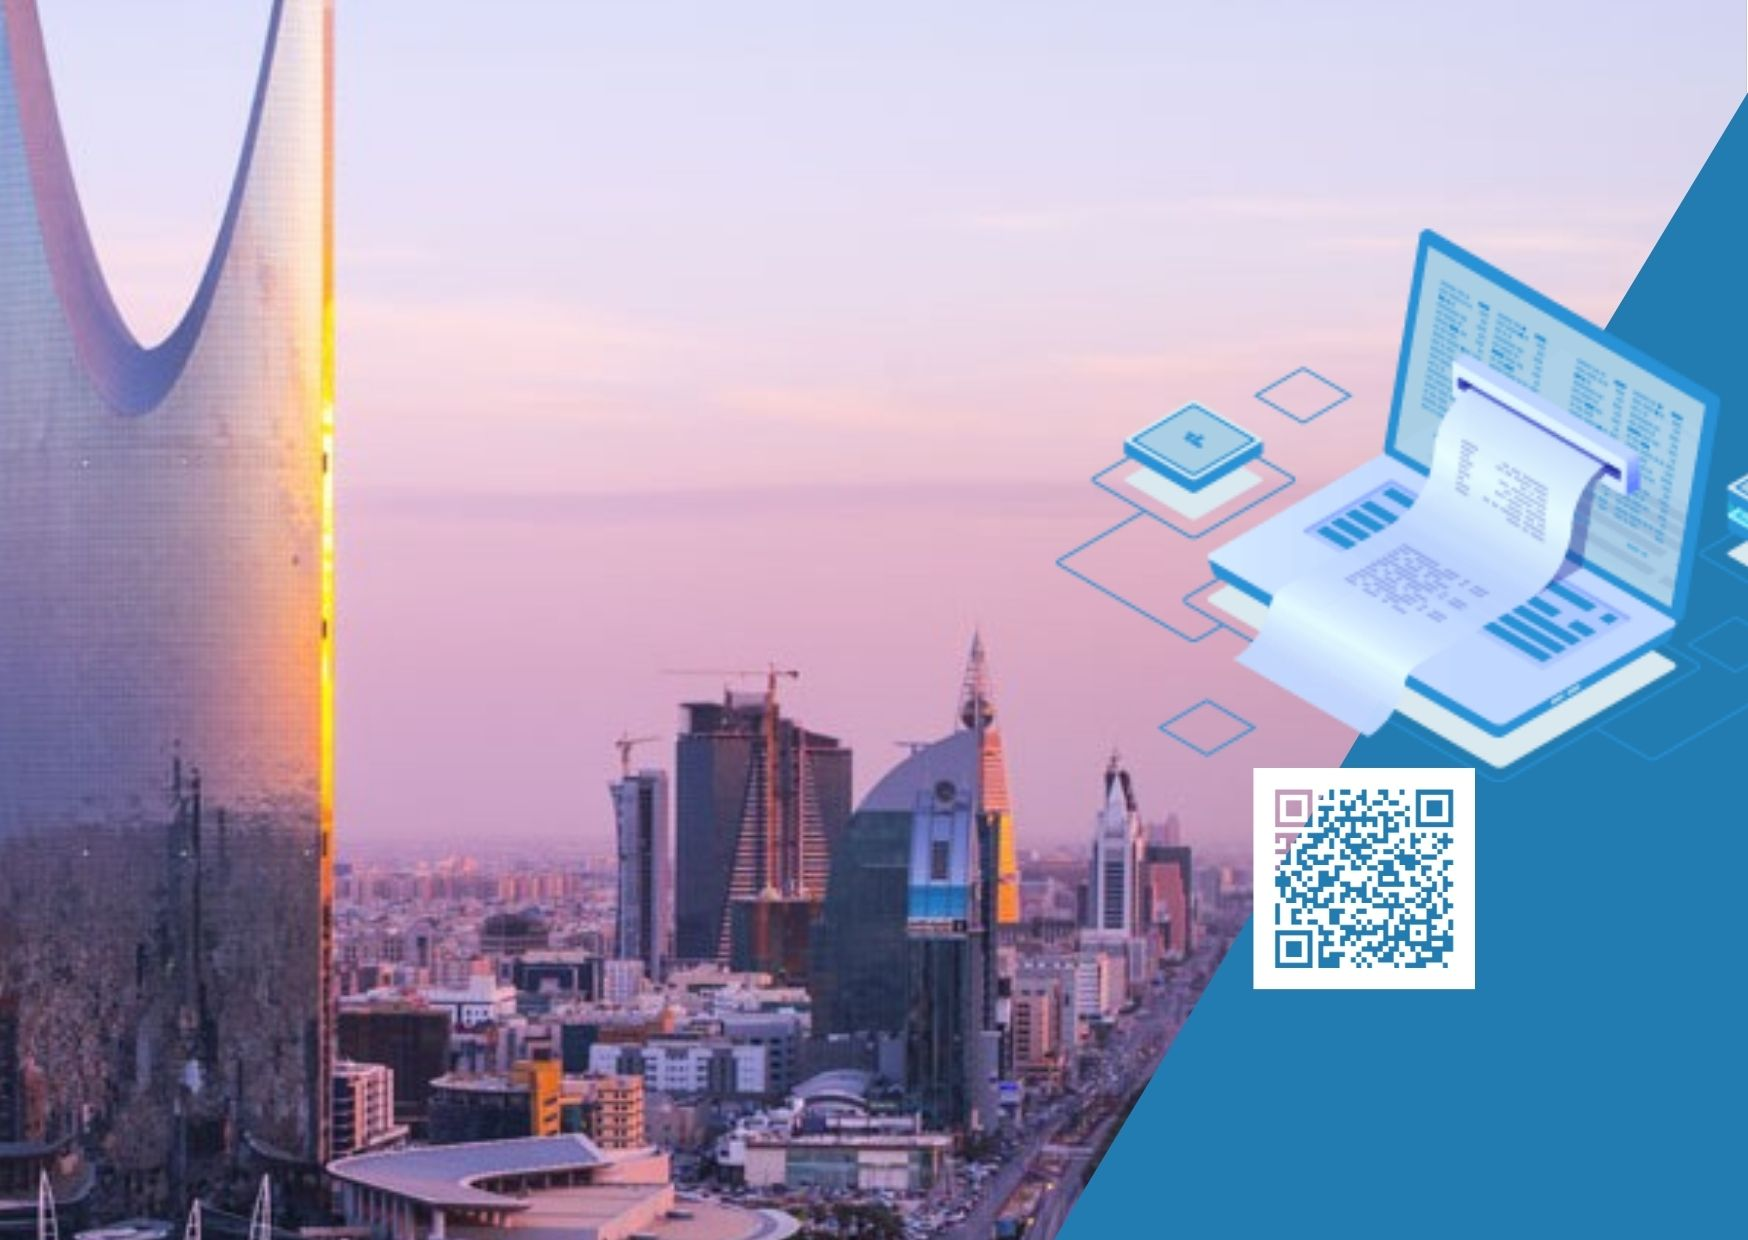 Digital Taxation in Saudi Arabia: How to implement E-invoicing with minimum effort and cost